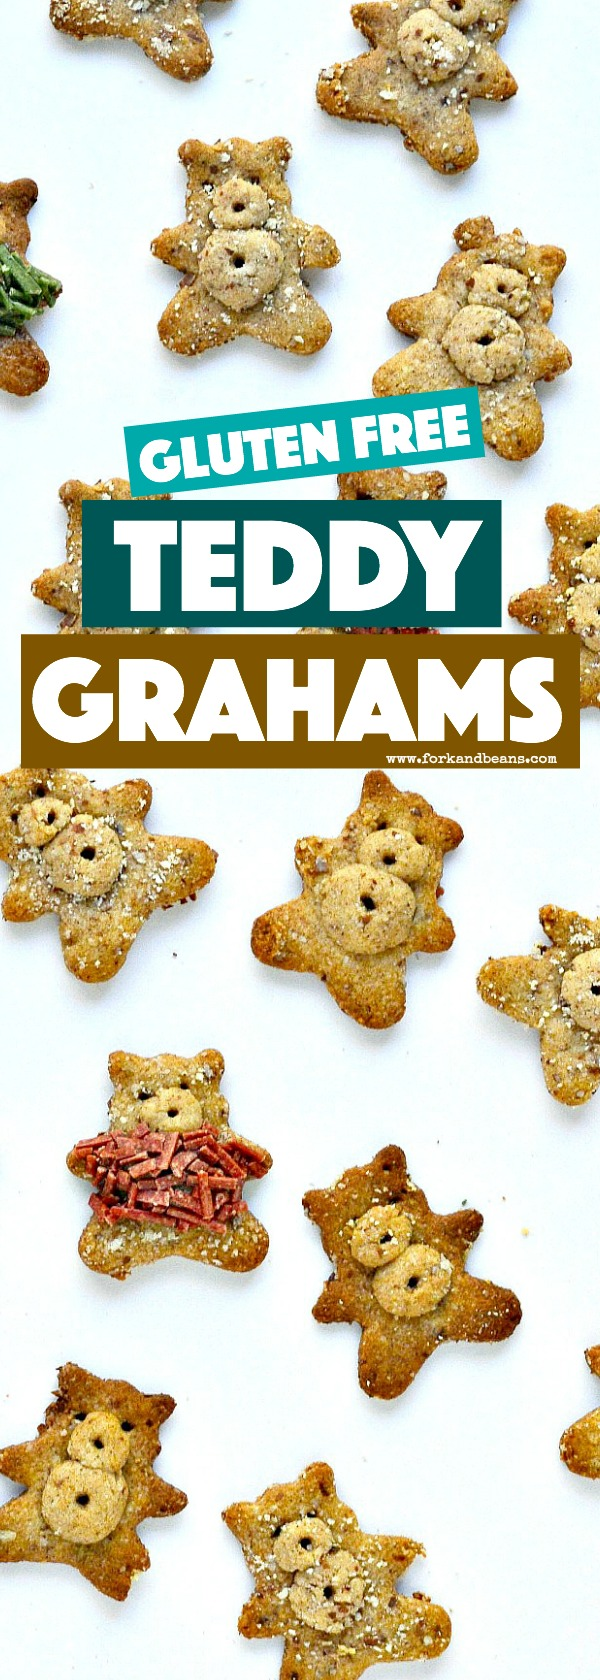 These gluten free Cinnamon Teddy Grahams are a special recreation to put into your kid's lunchbox.